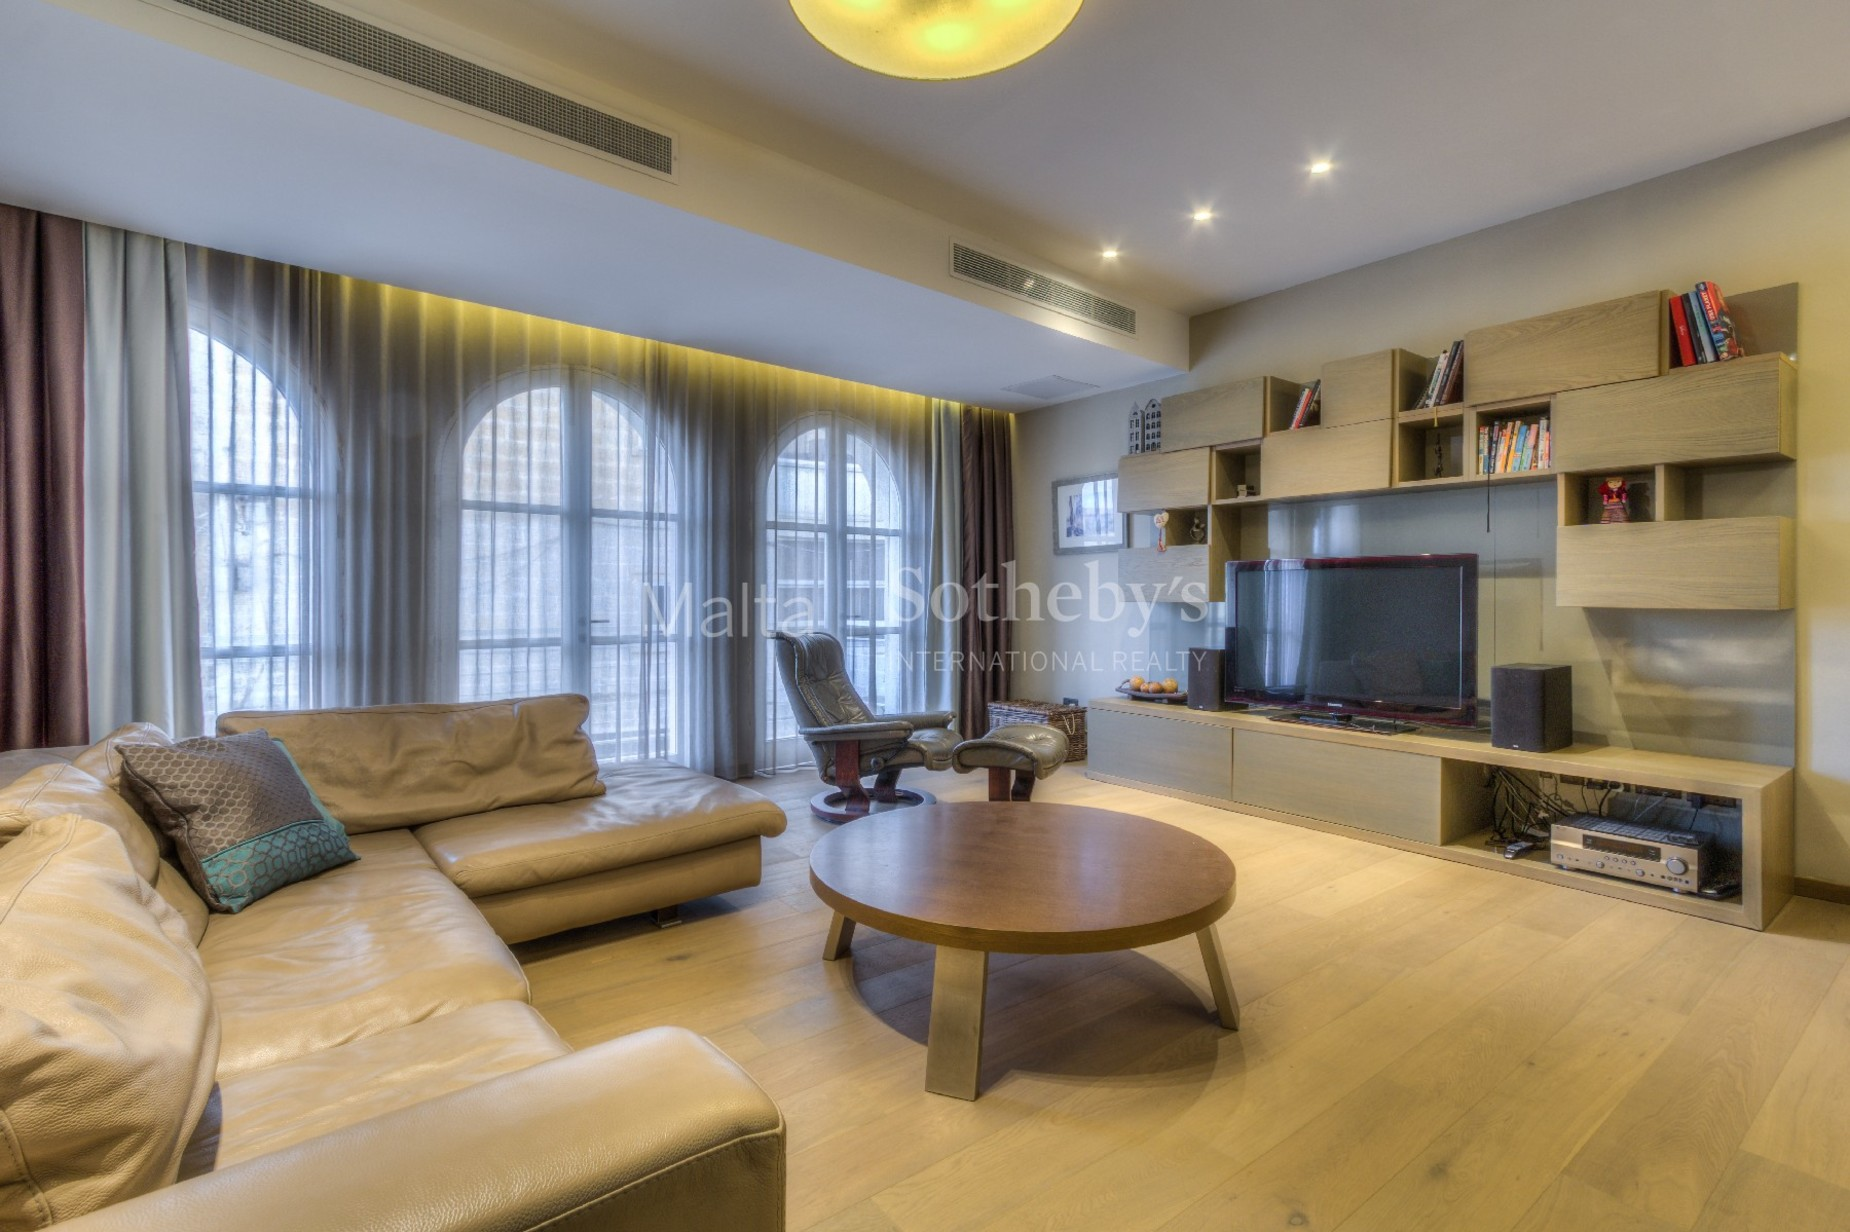 4 bed Apartment For Rent in St Julian's, St Julian's - thumb 12